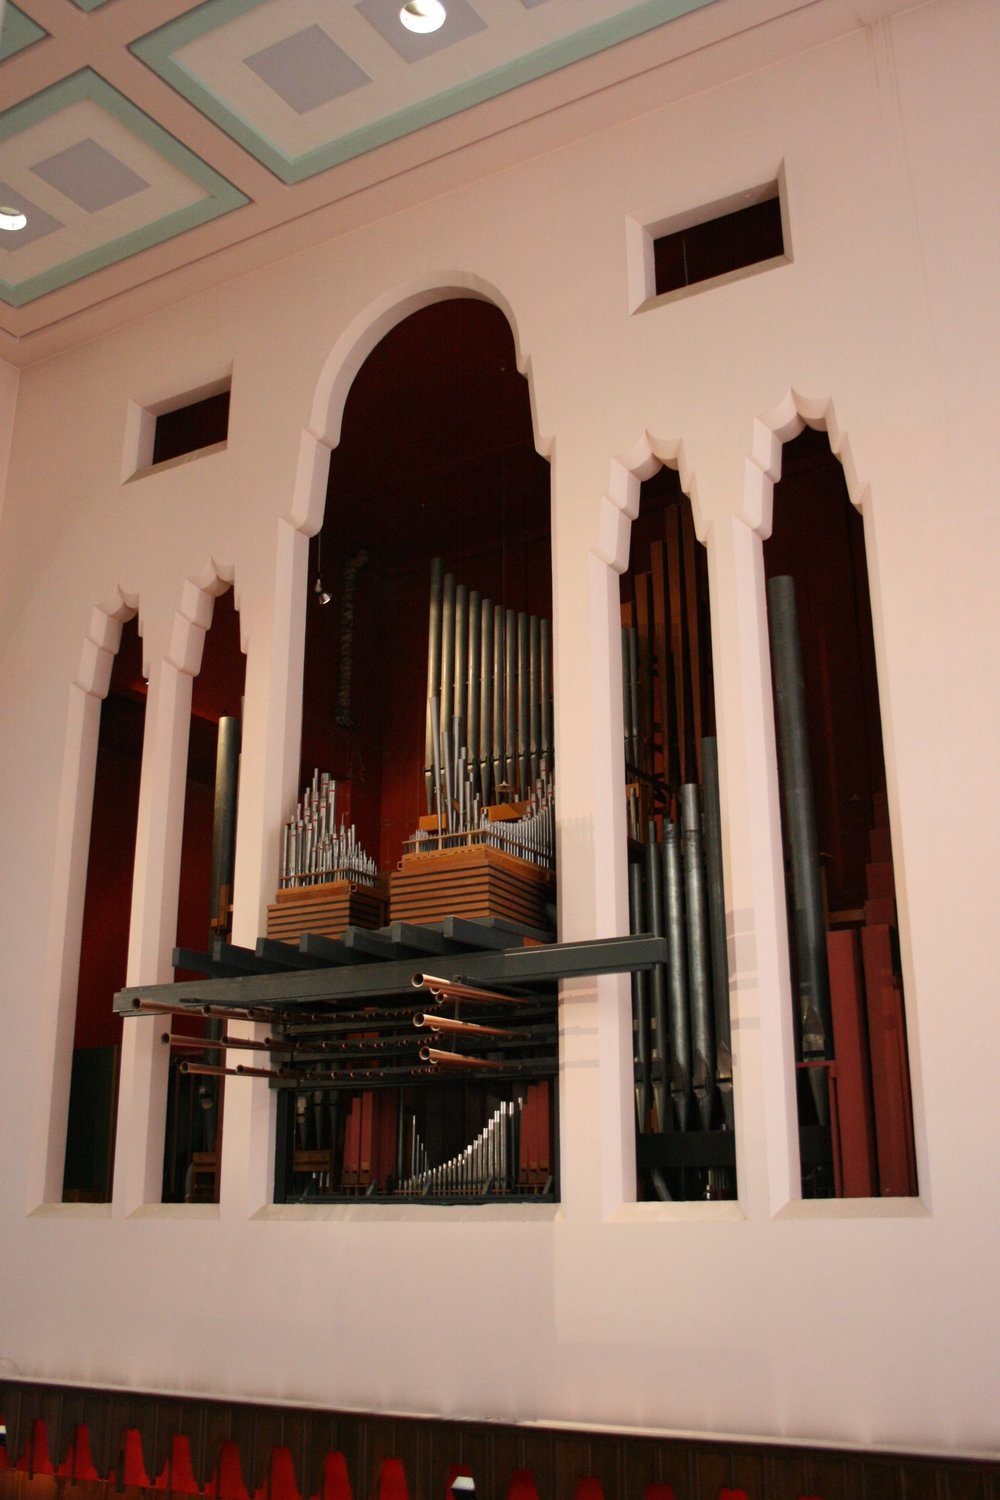 The organ prior to the earthquake